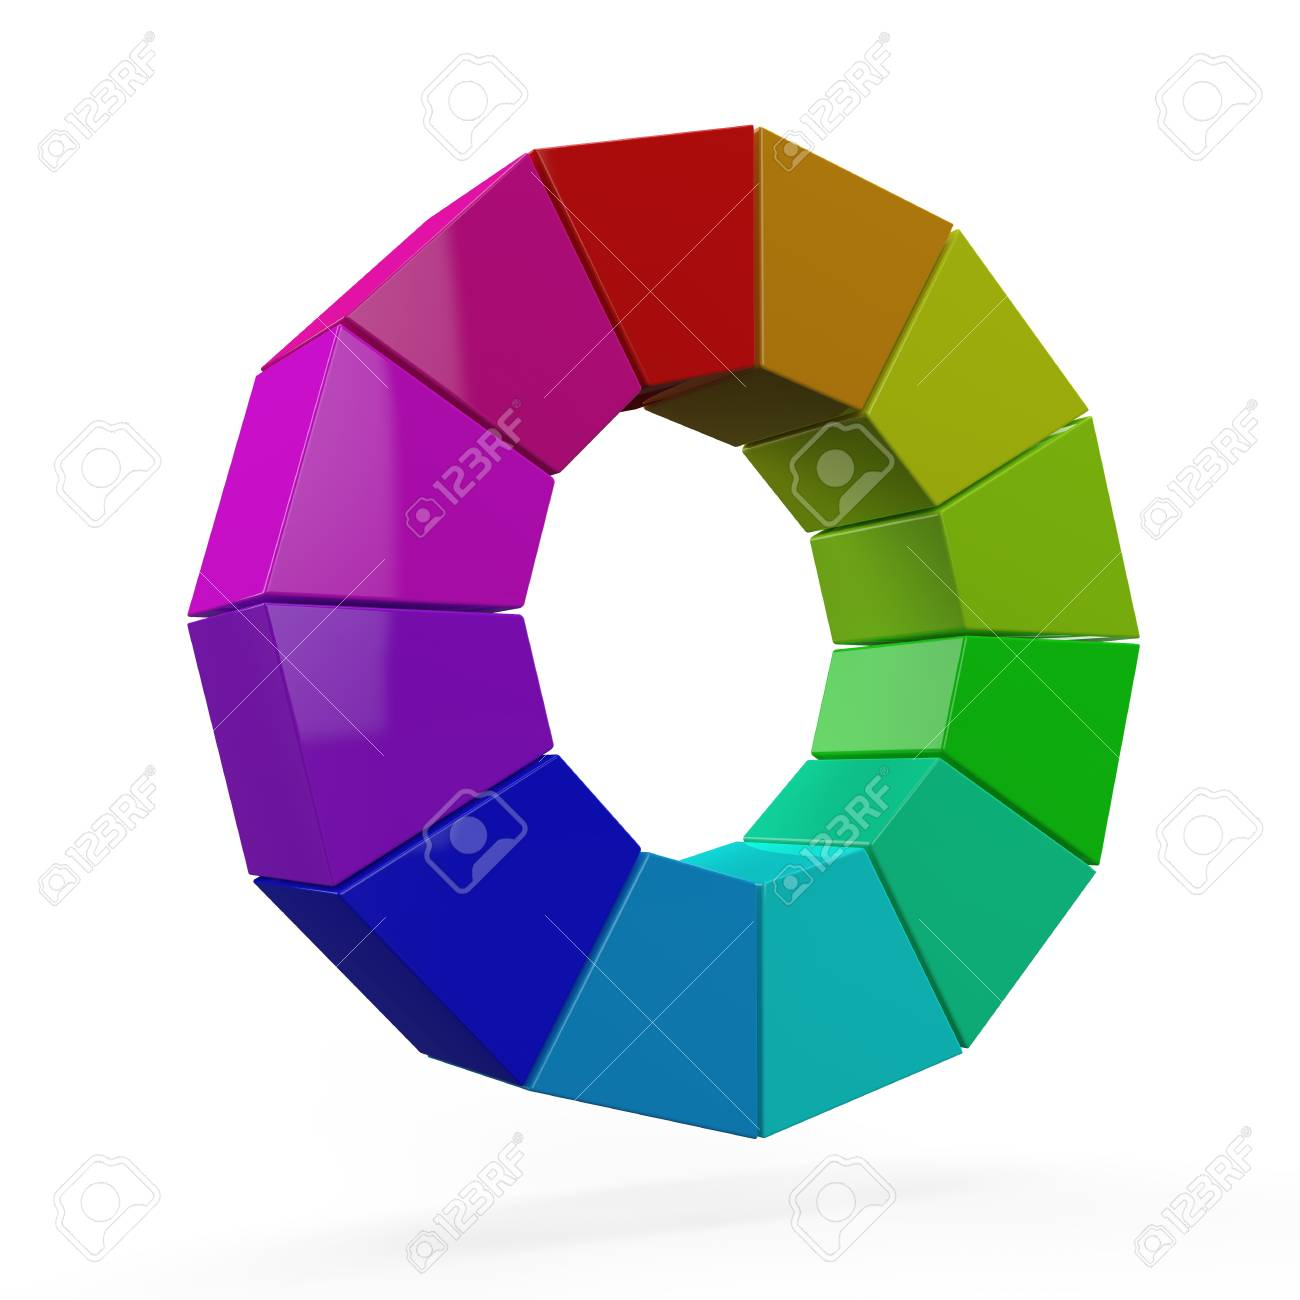 3D color wheel Stock Photo 17907199